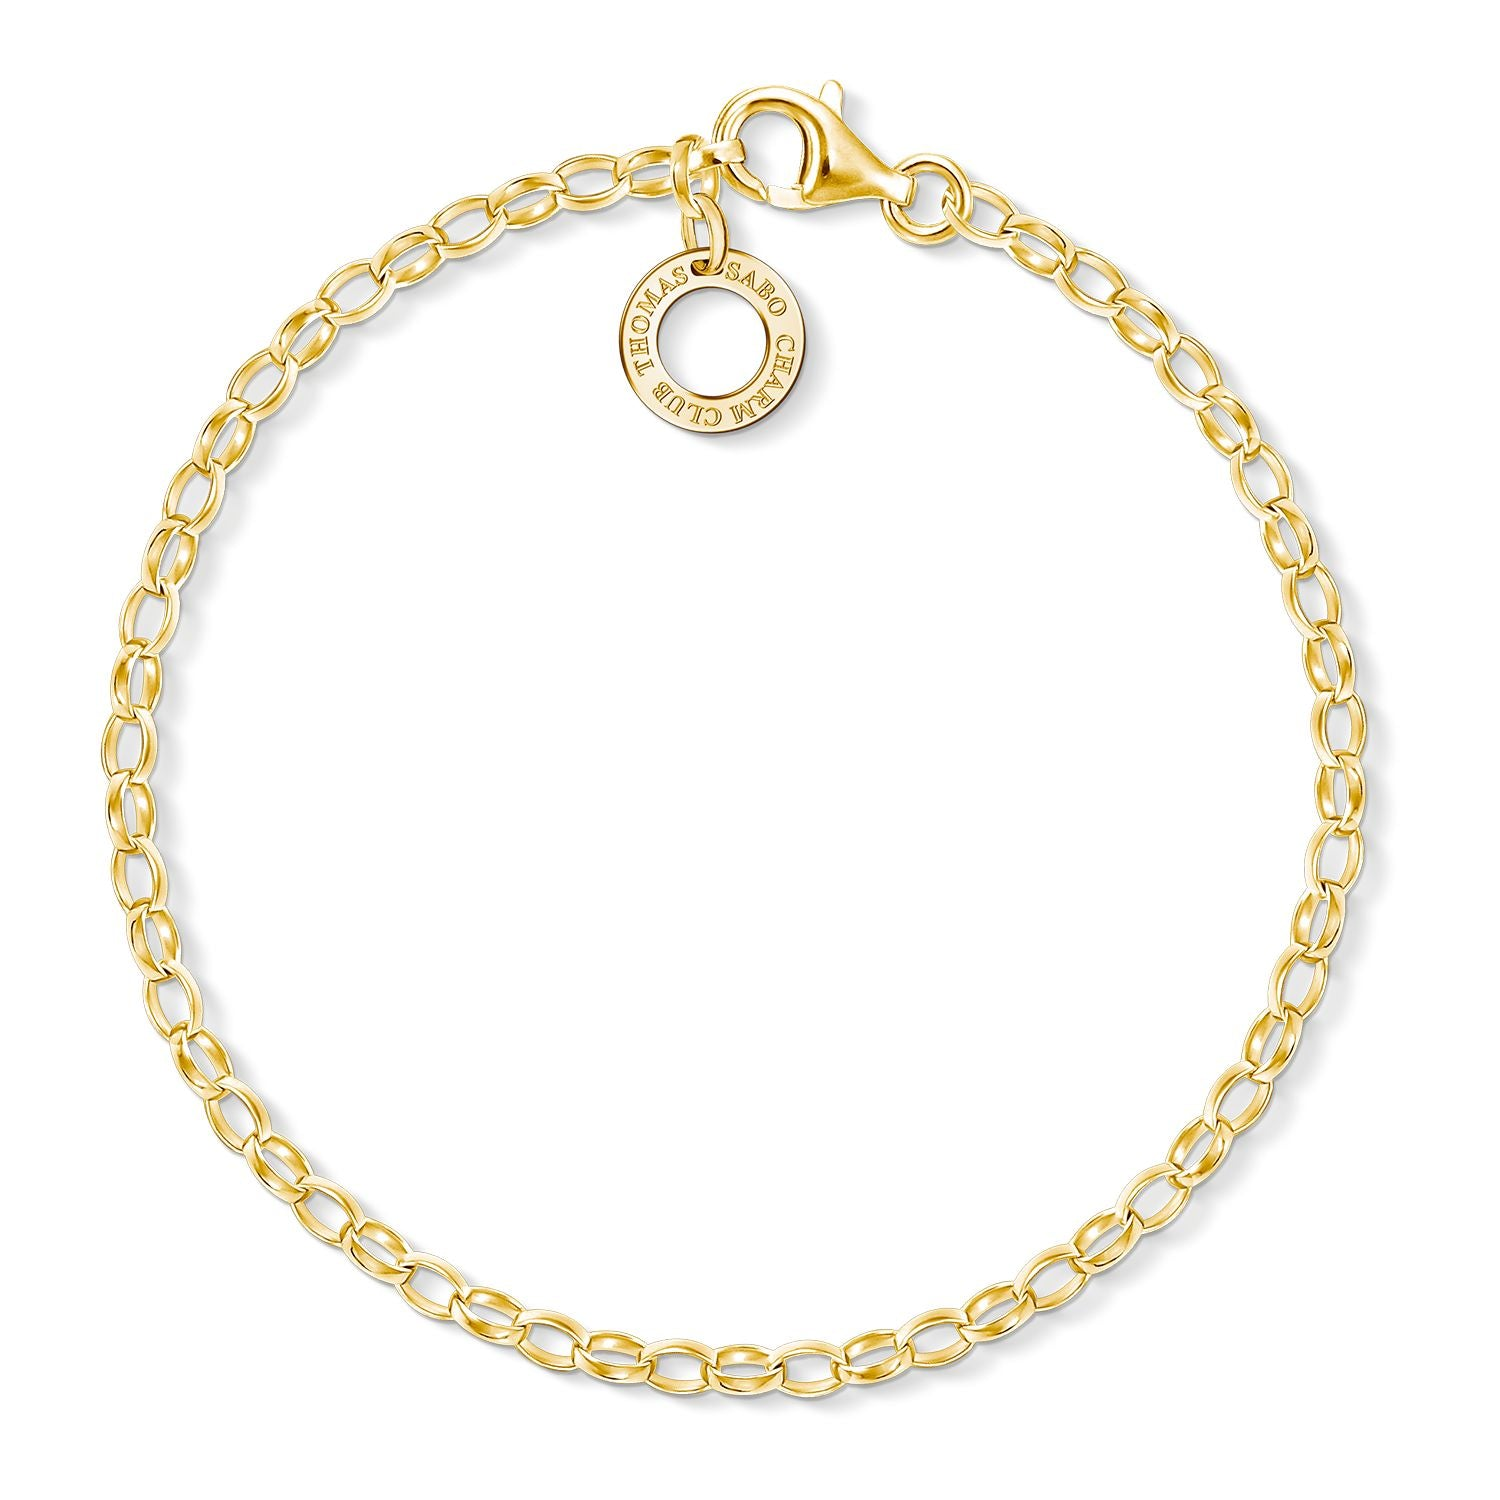 STERLING SILVER YELLOW GOLD PLATED C/CLUB BELCHER BRACLET